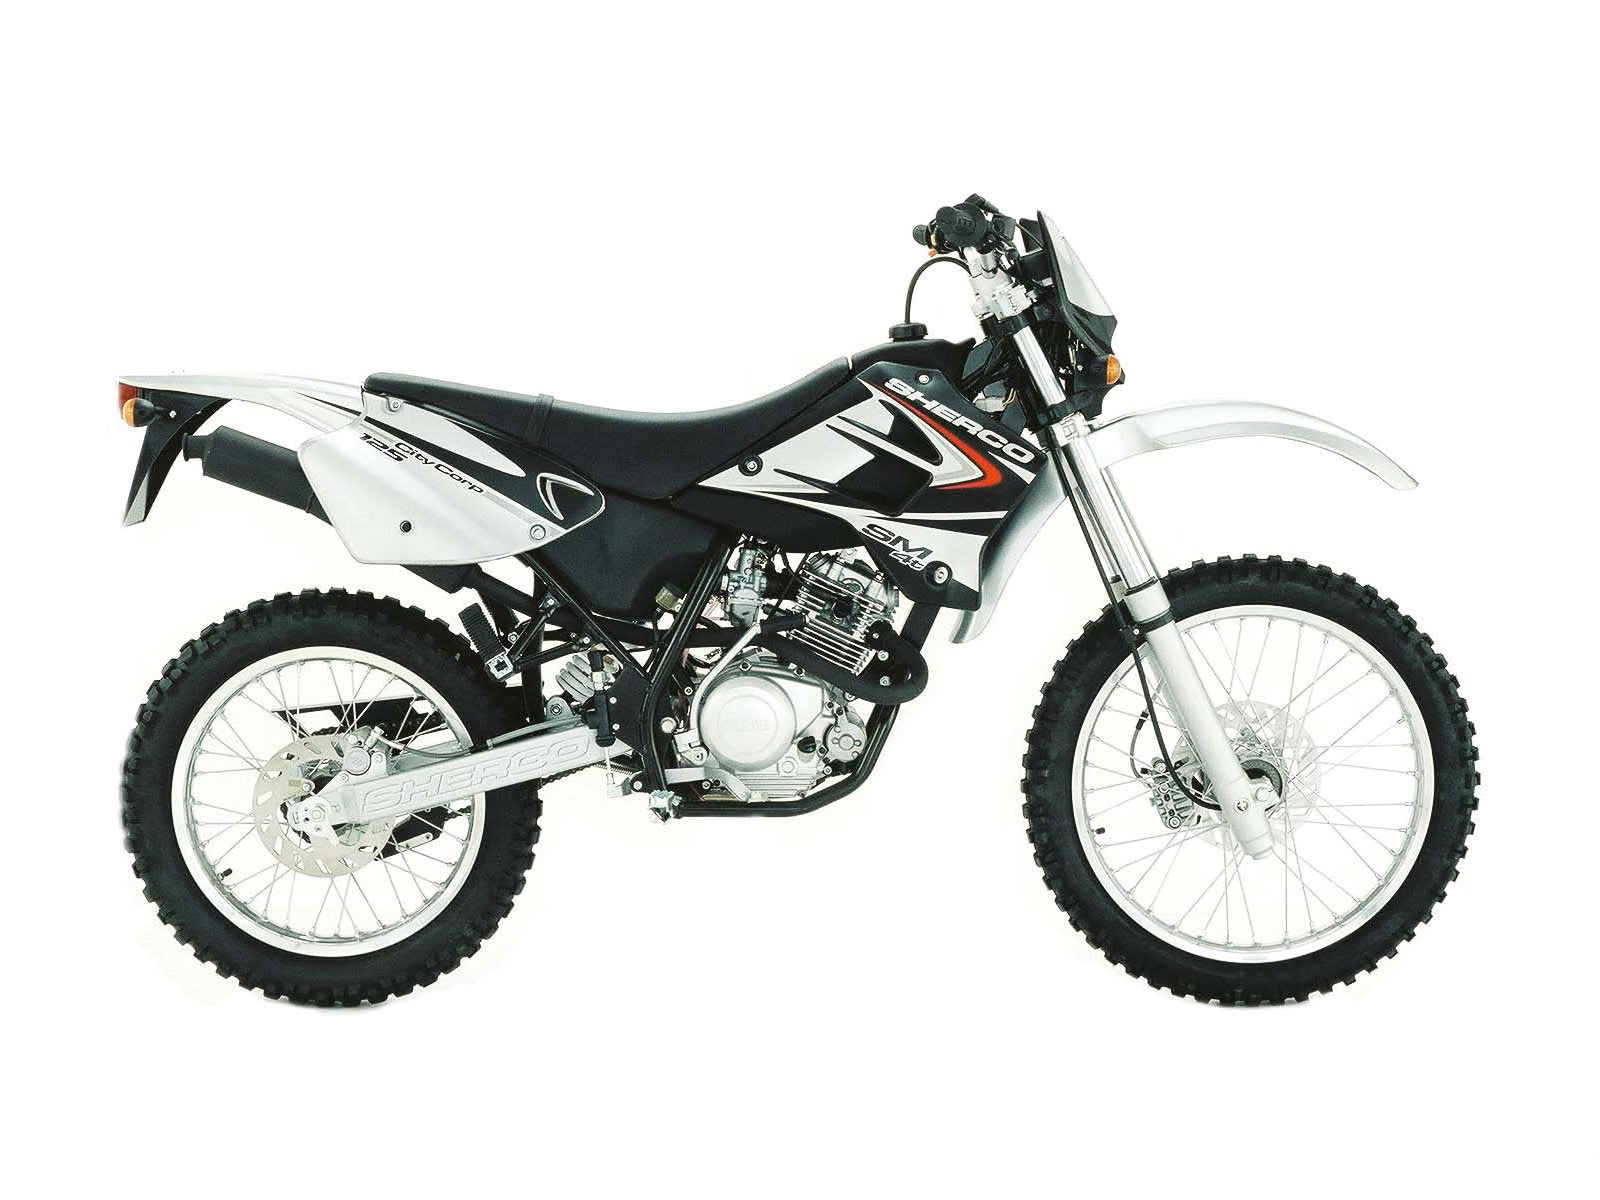 Sherco 125 Enduro Shark Replica images #124636